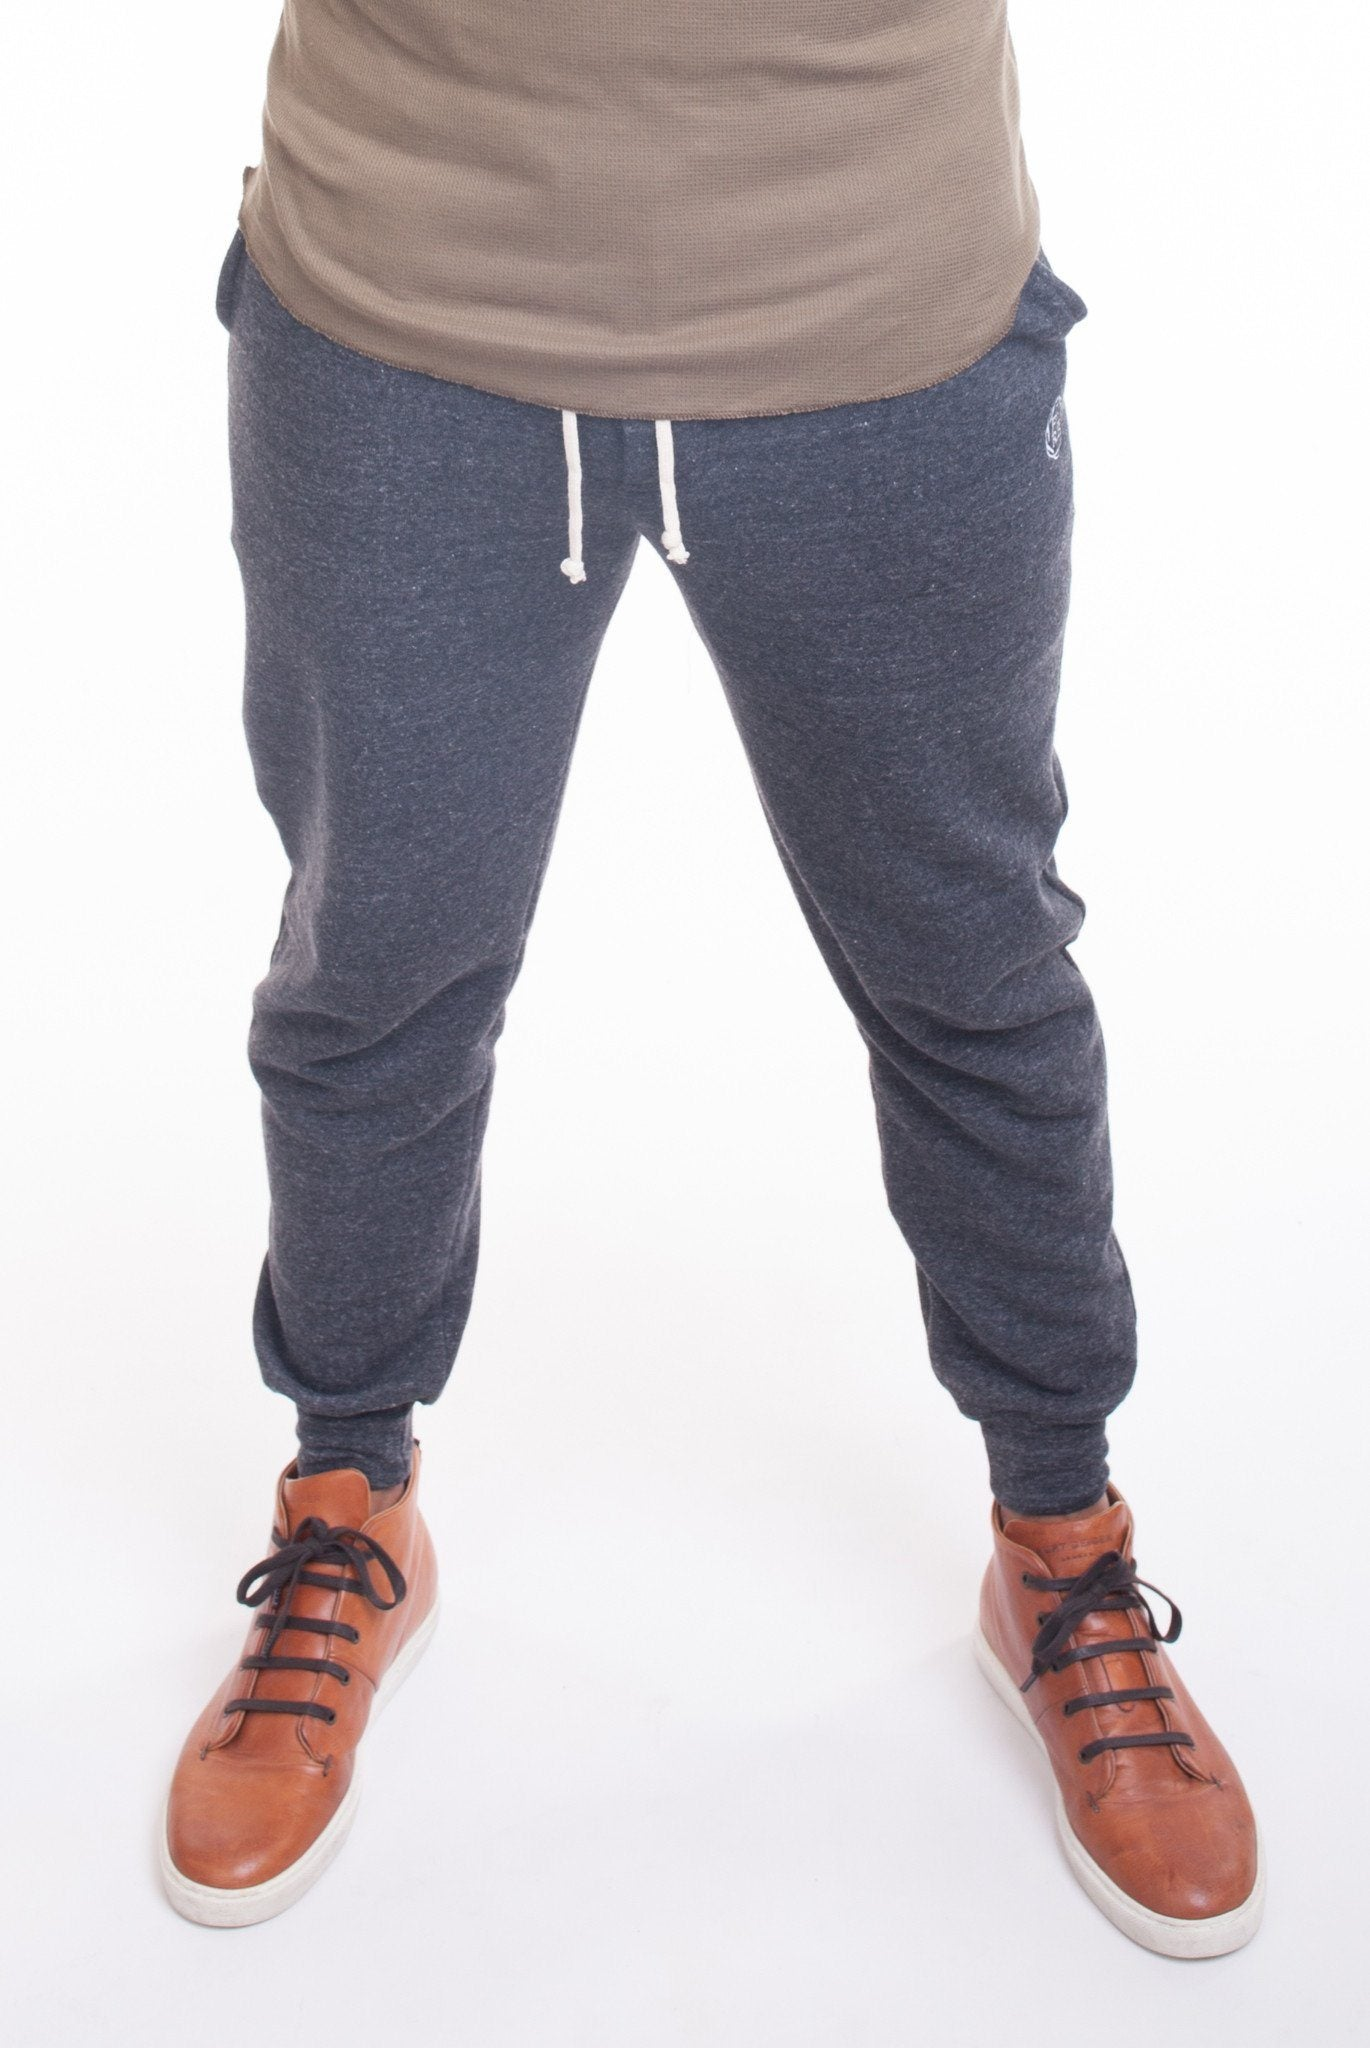 DARK HEATHER GREY JOGGERS | Poor Little Rich Boy Clothing